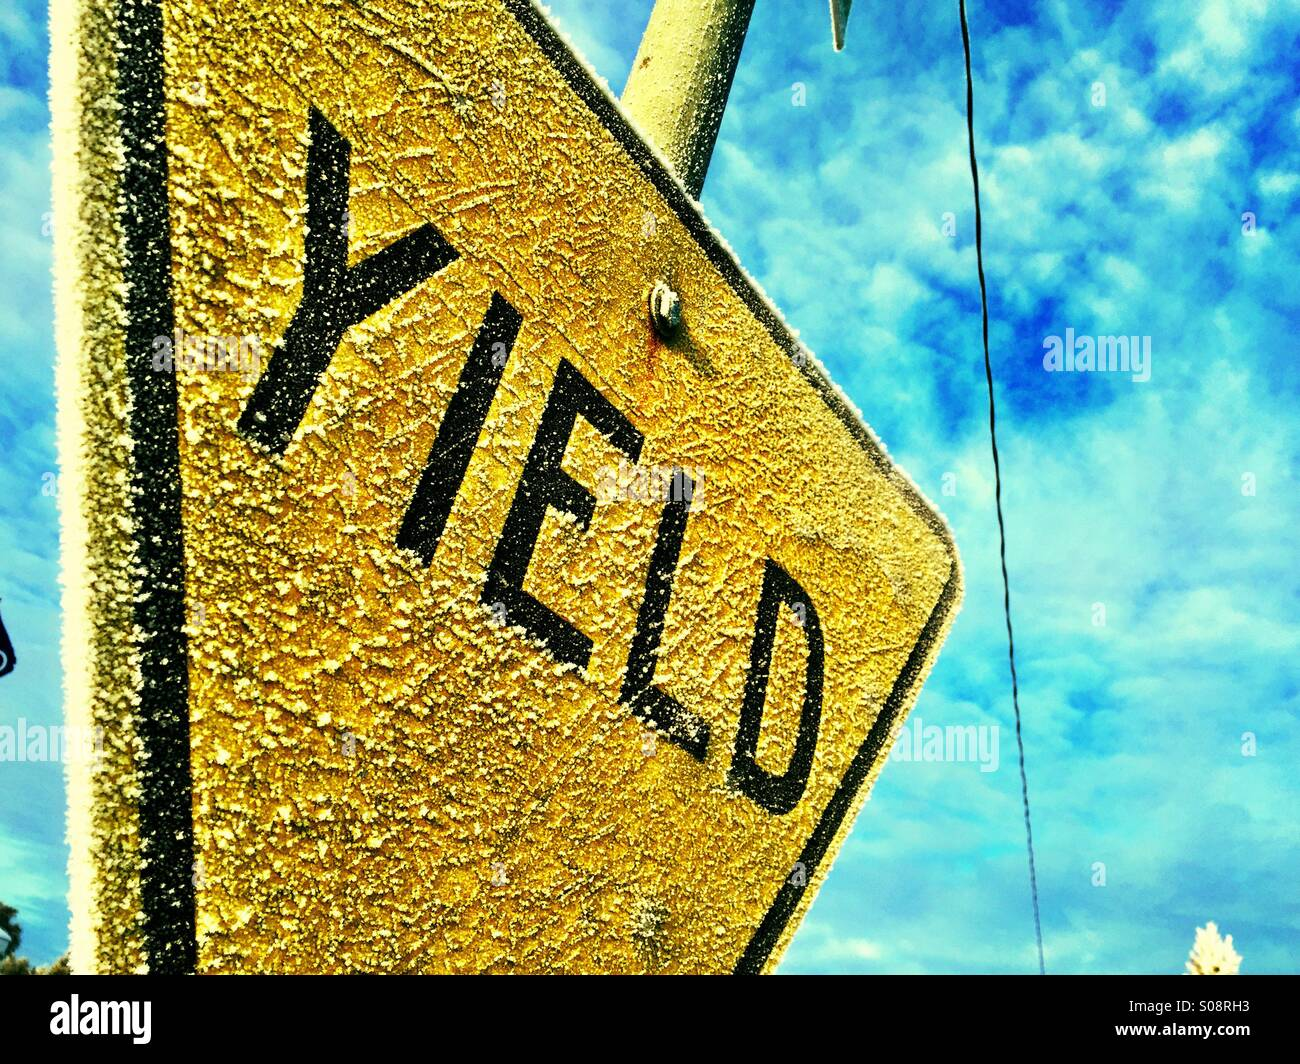 Frosted traffic sign on a cold winter morning. - Stock Image